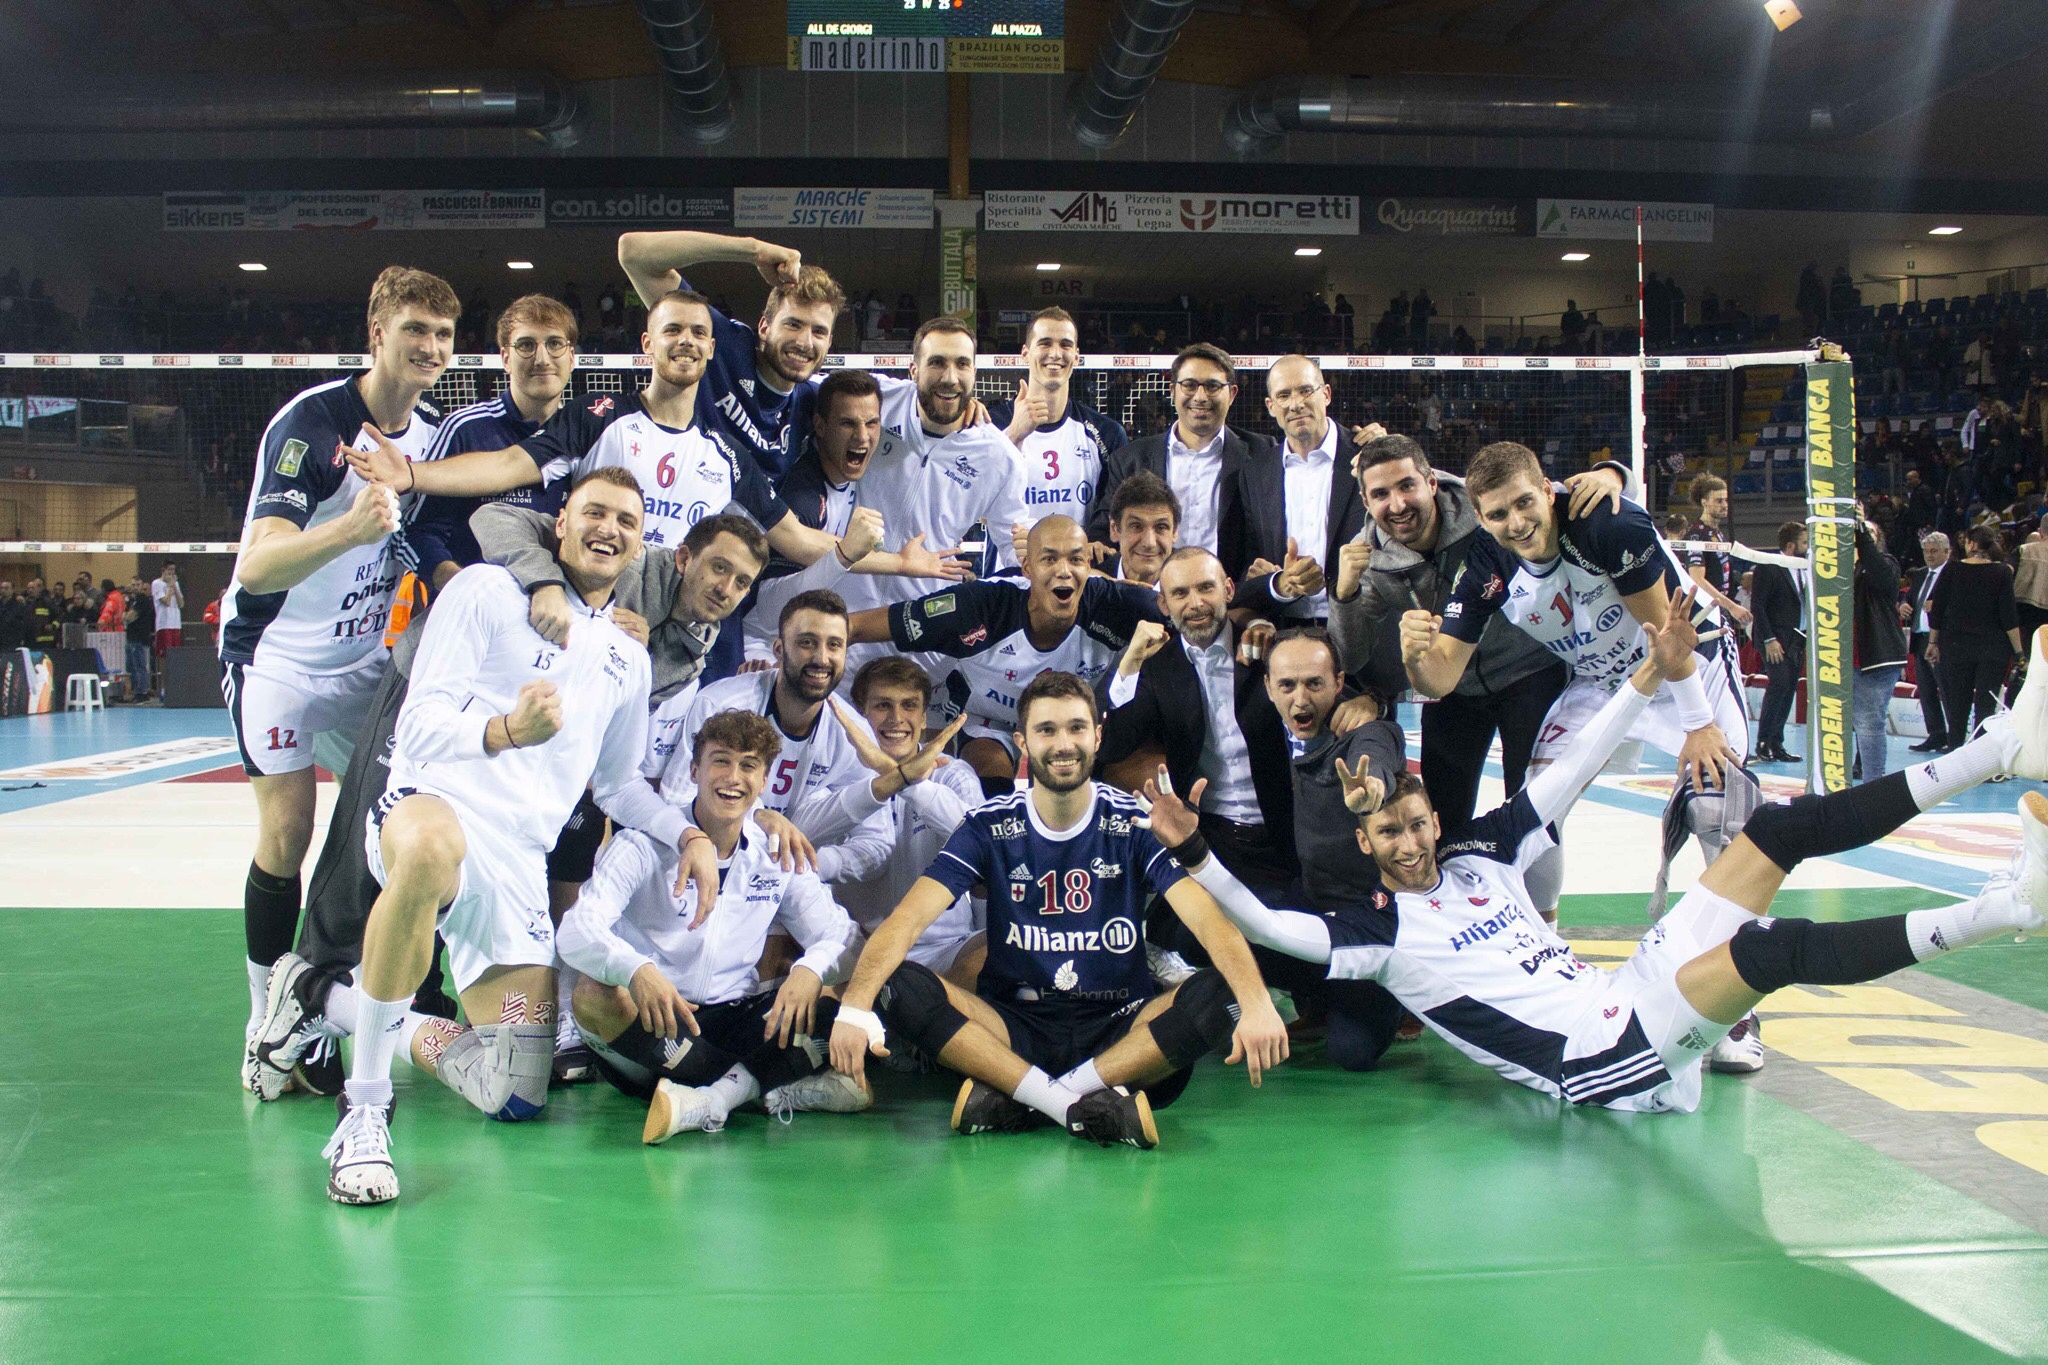 Italy: Abdel-Aziz says STOP – Lube's unbeaten record is over! 9th victory in a row for Perugia